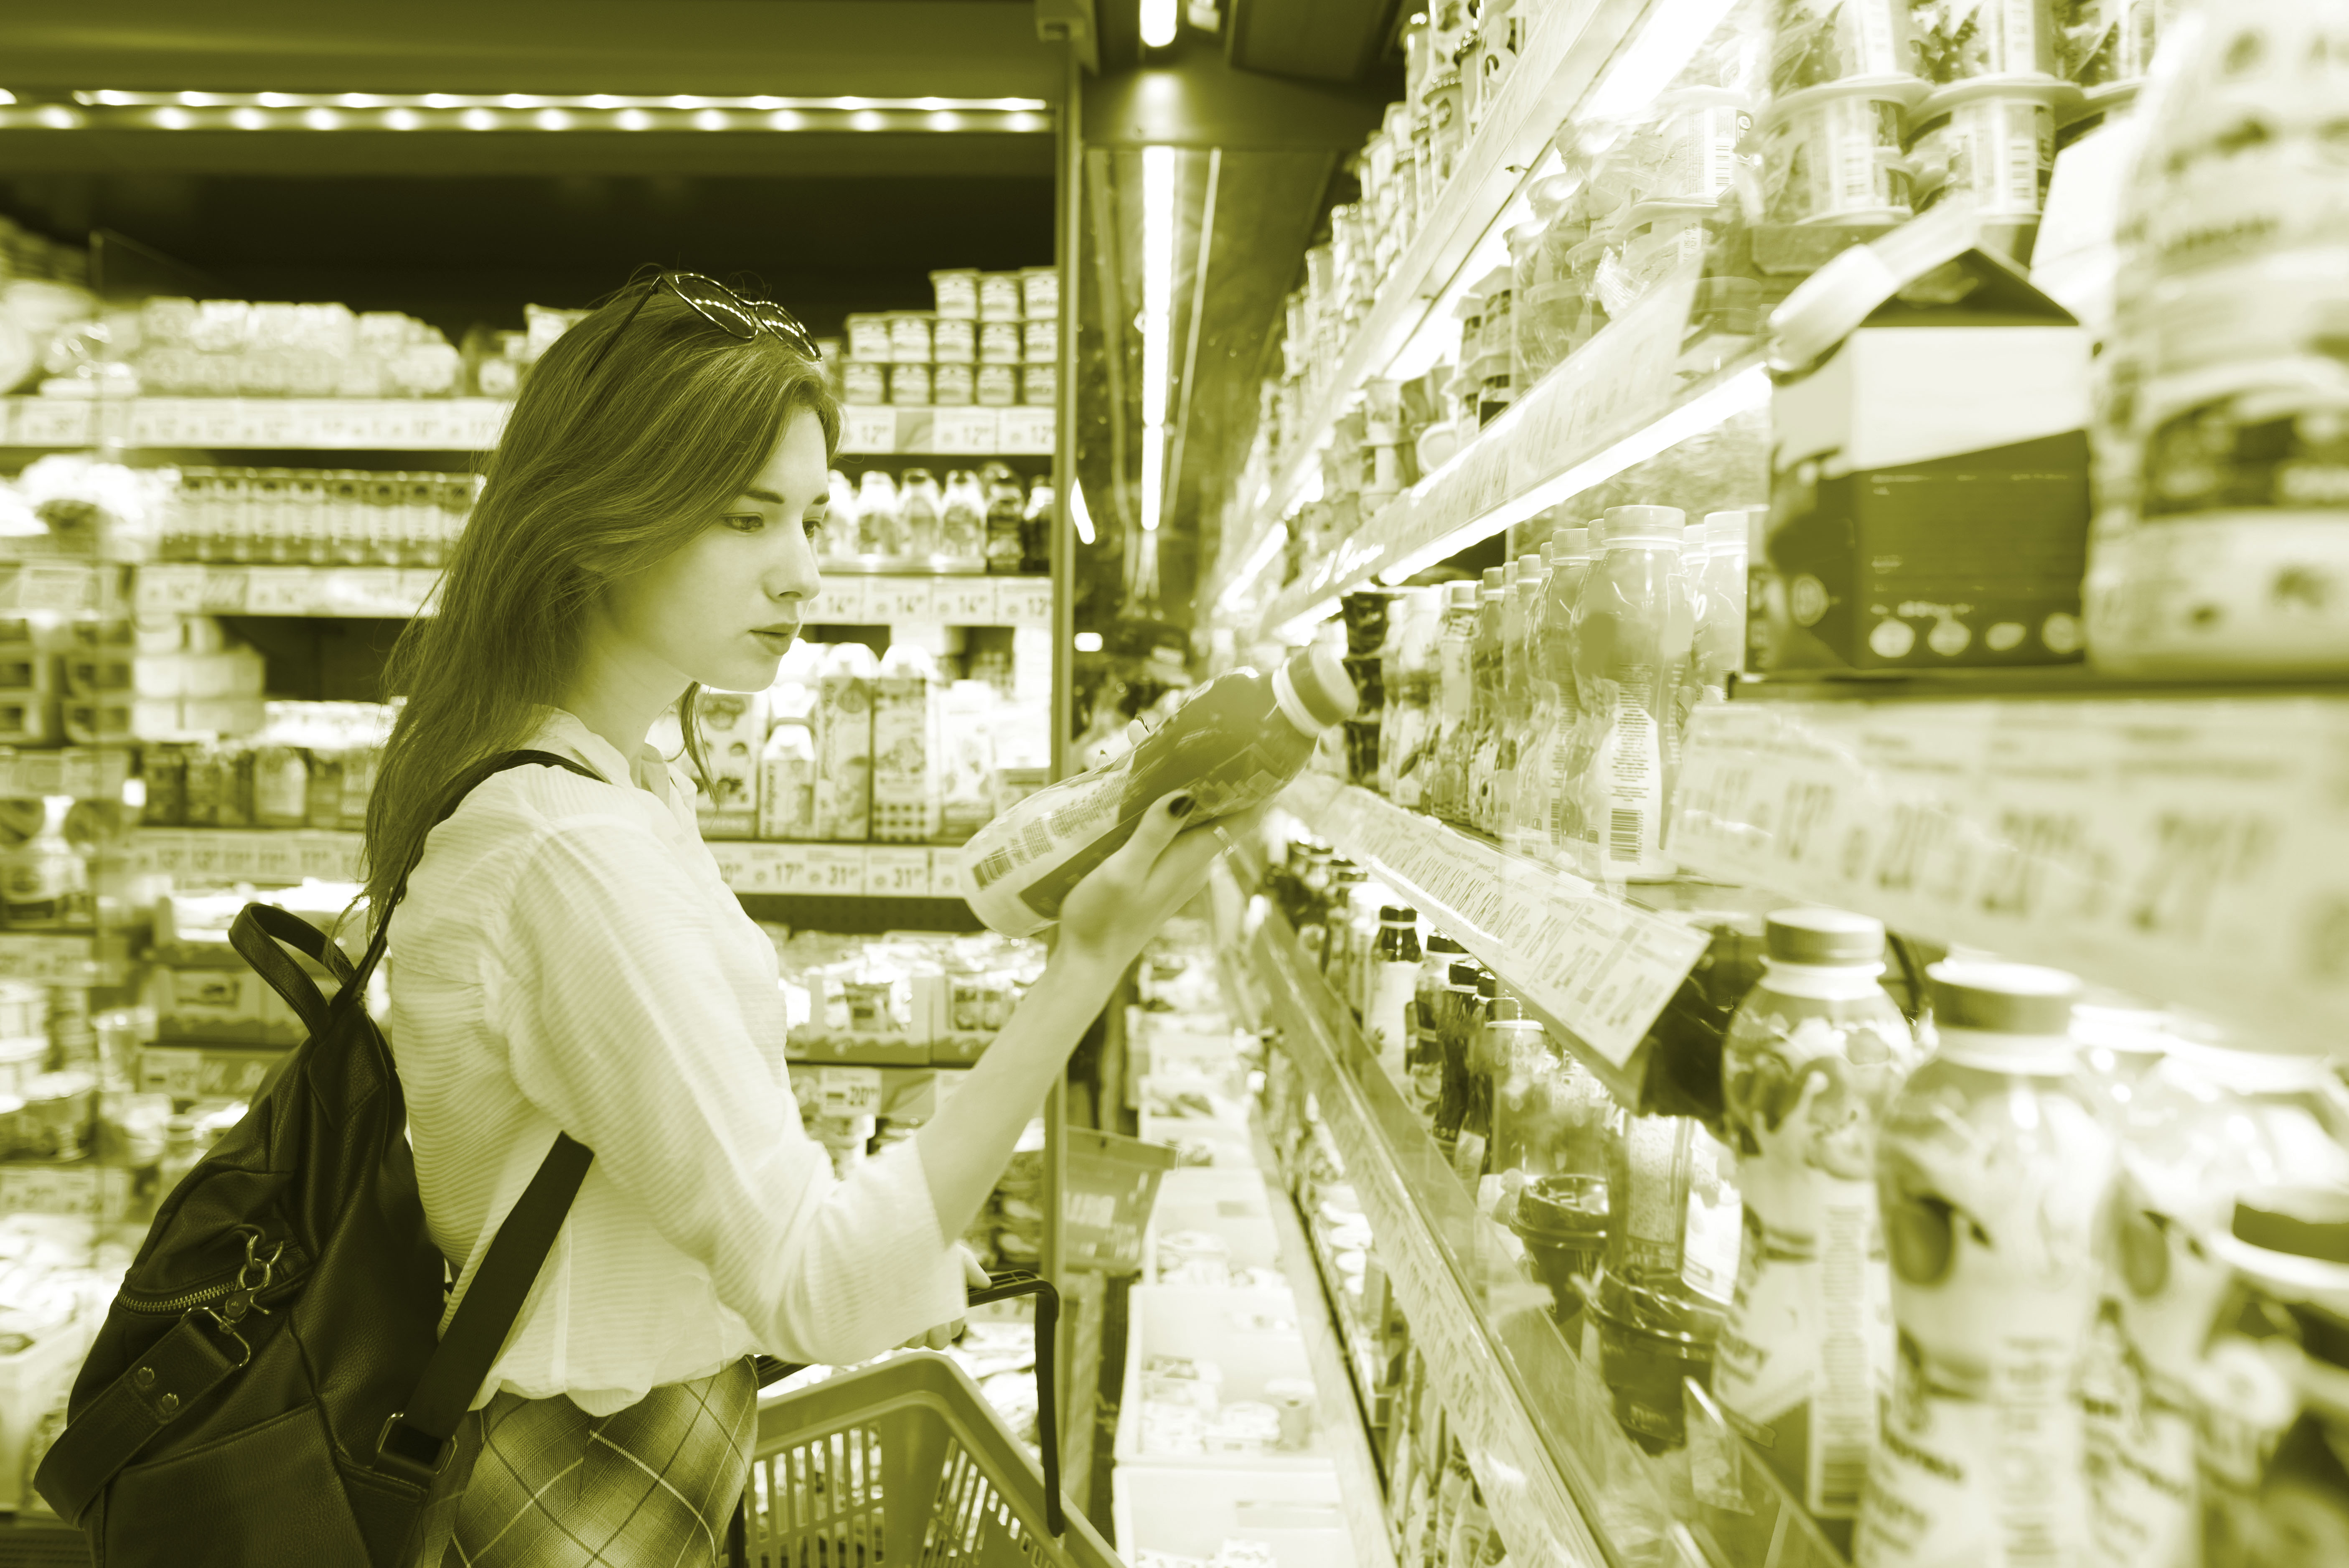 Food labelling after brexit, customer looking at food label